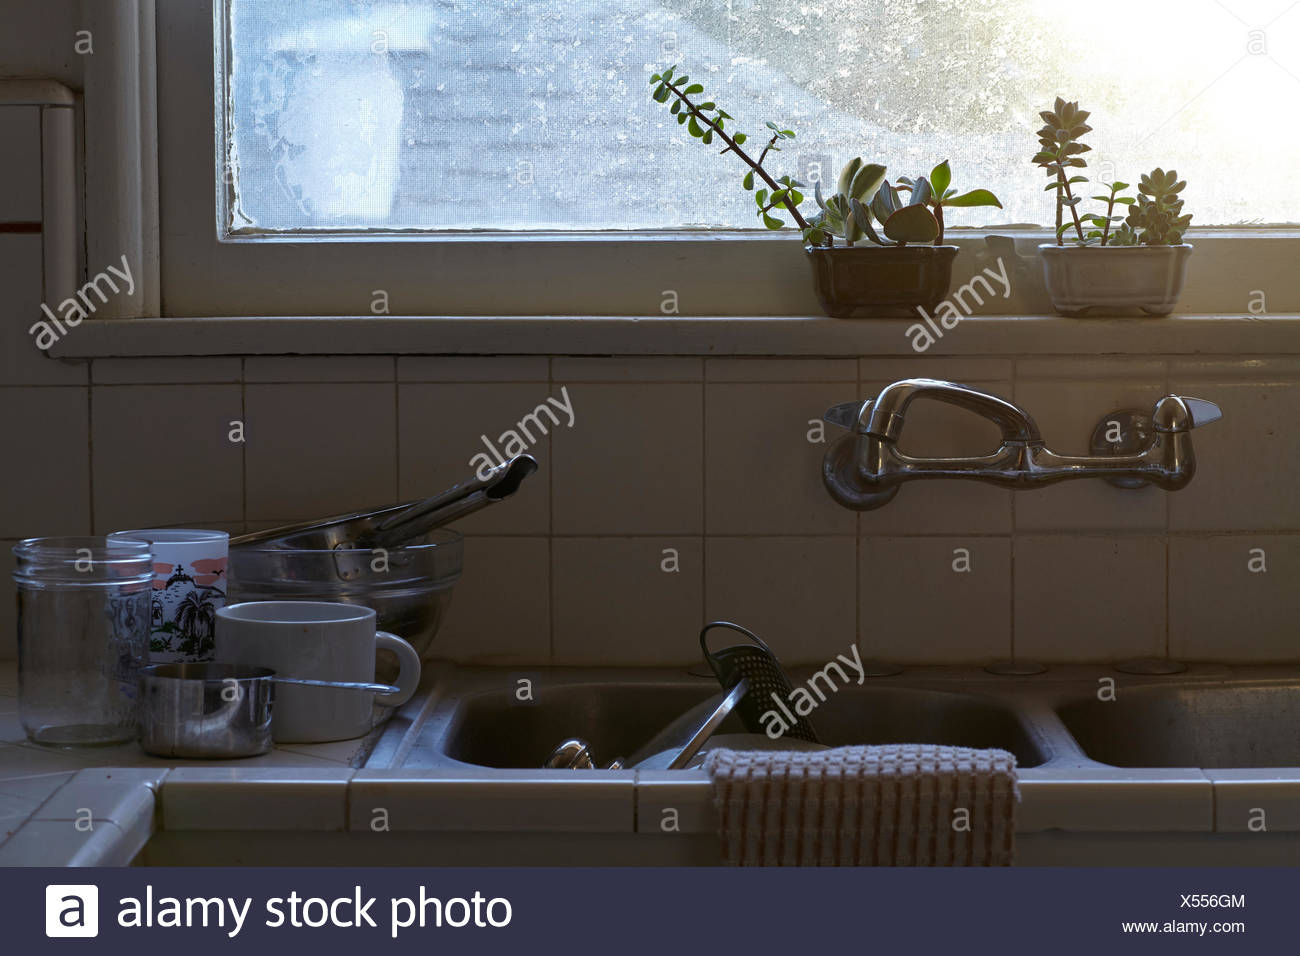 Dirty washing up stacked in kitchen sink and counter Stock Photo ...